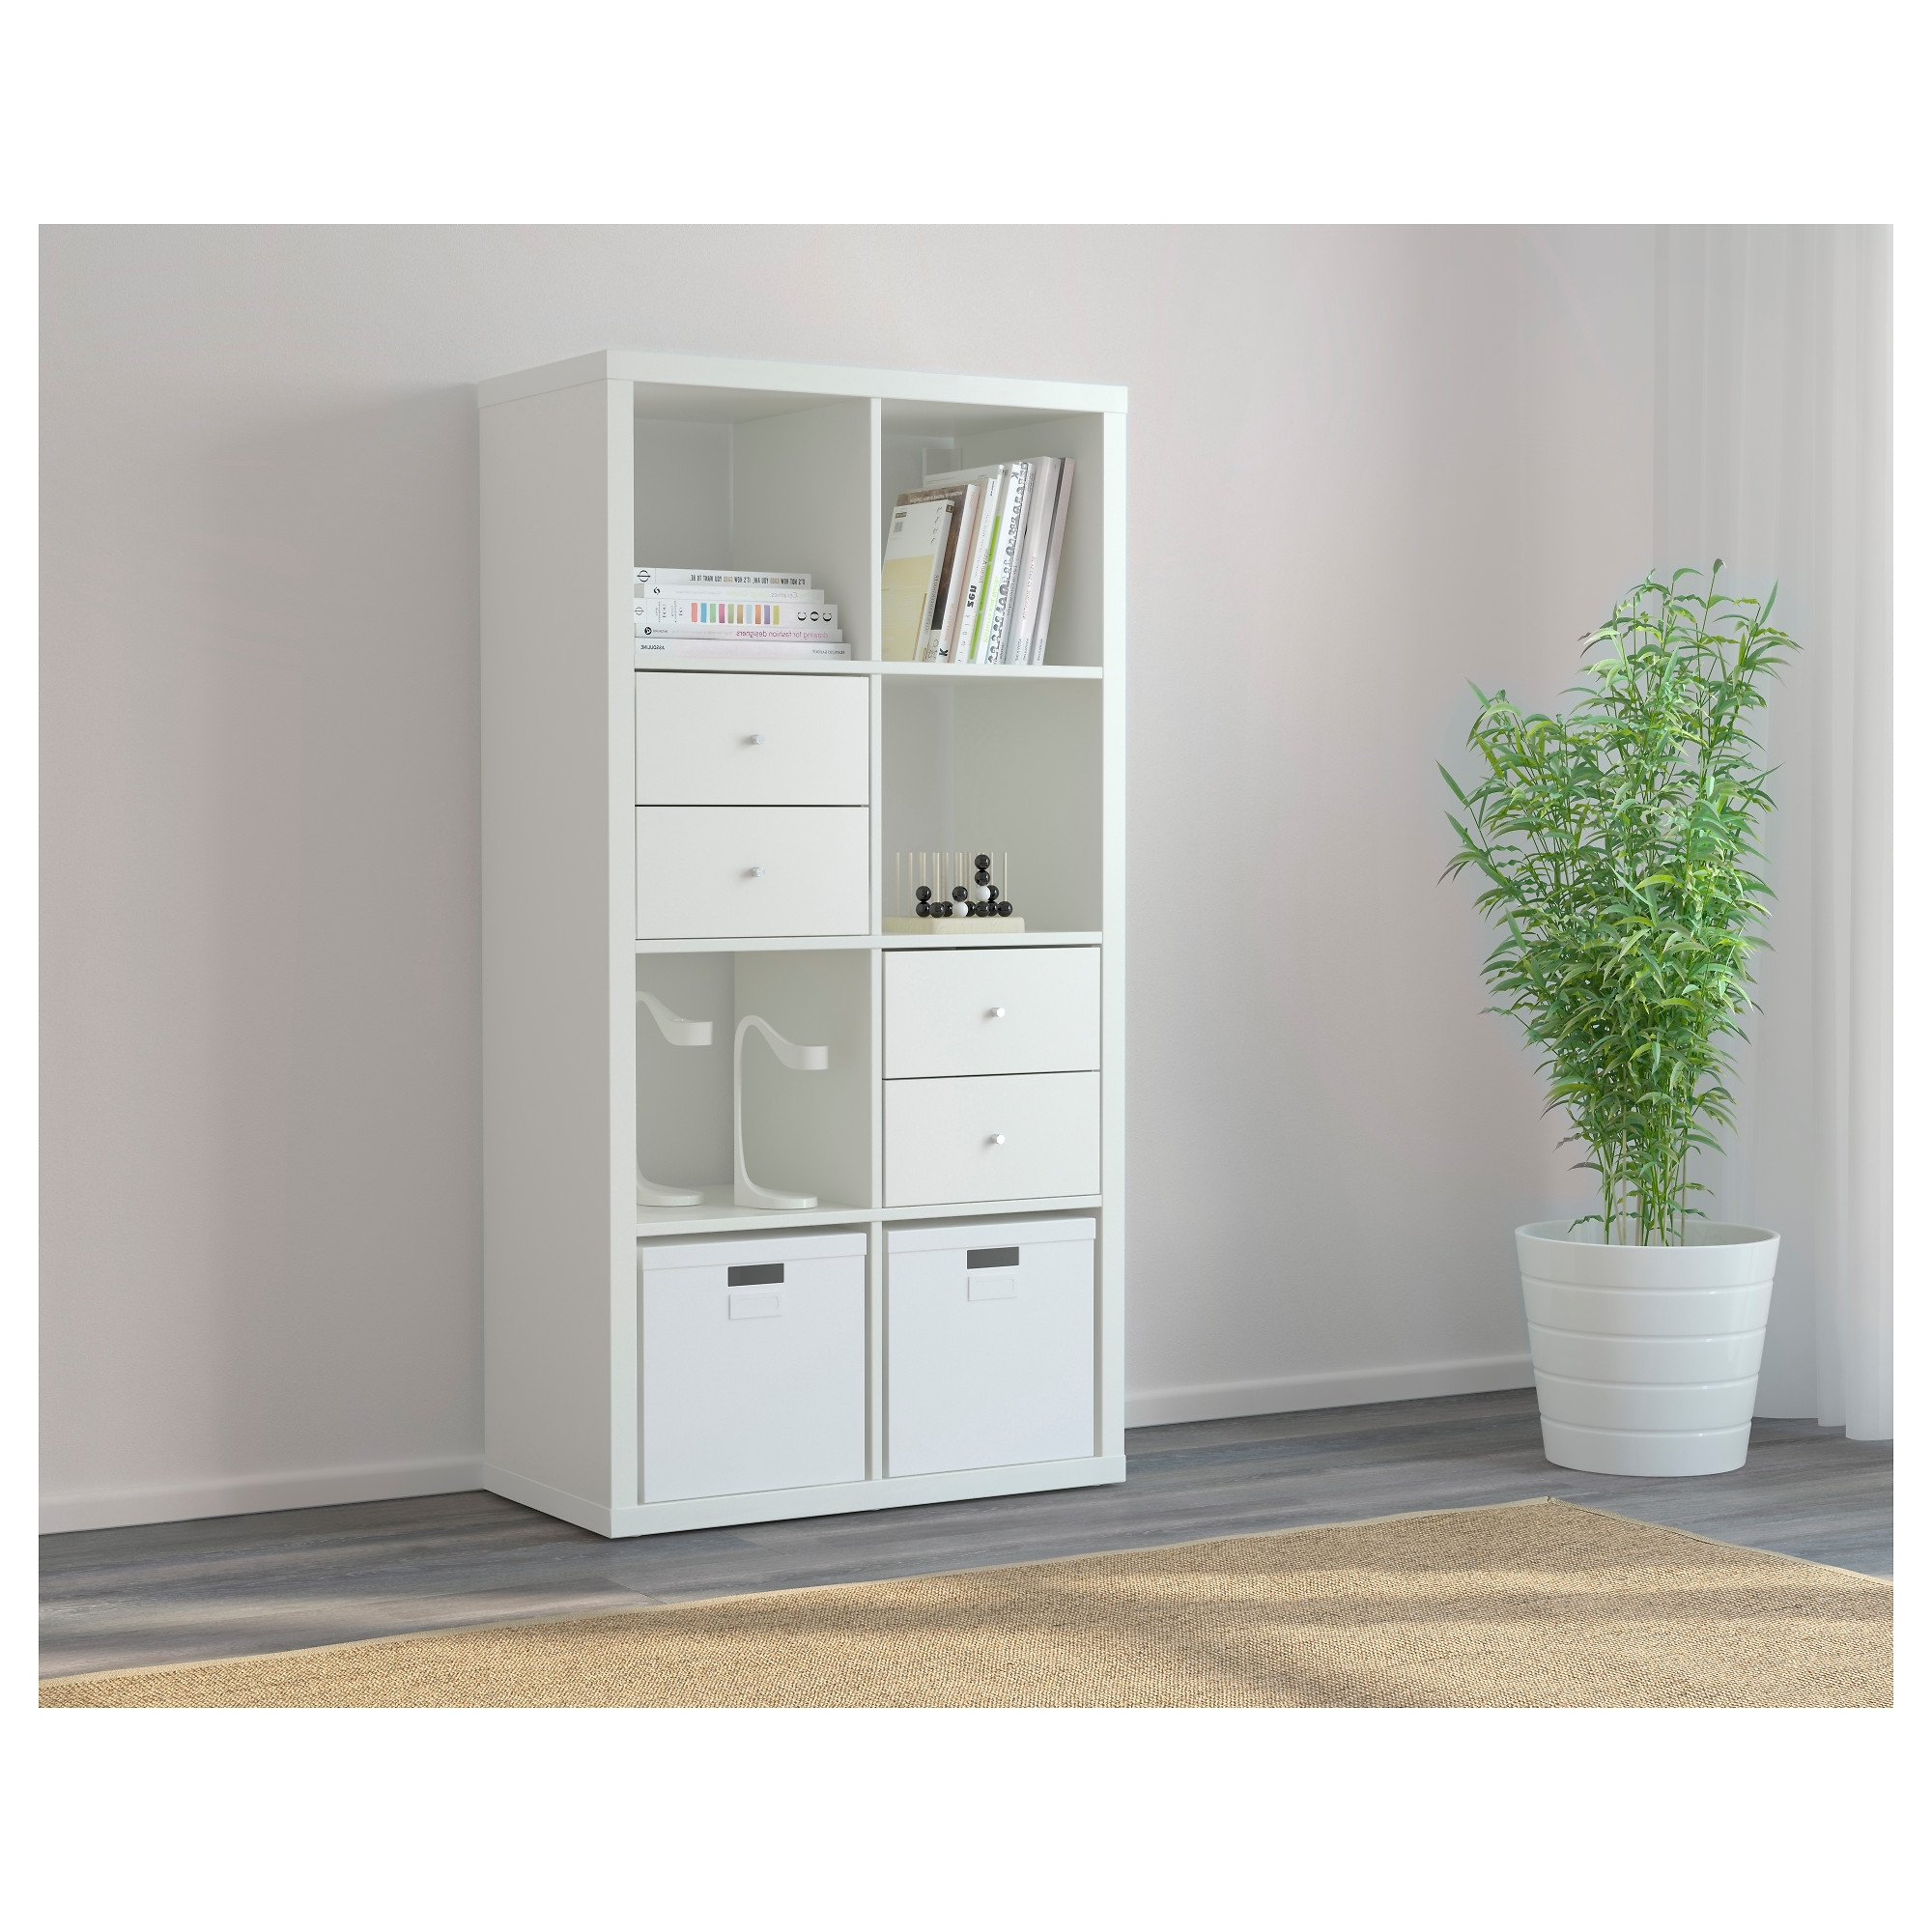 Kallax Shelf Unit – Birch Effect – Ikea With Regard To Preferred Ikea Kallax Bookcases (View 11 of 15)